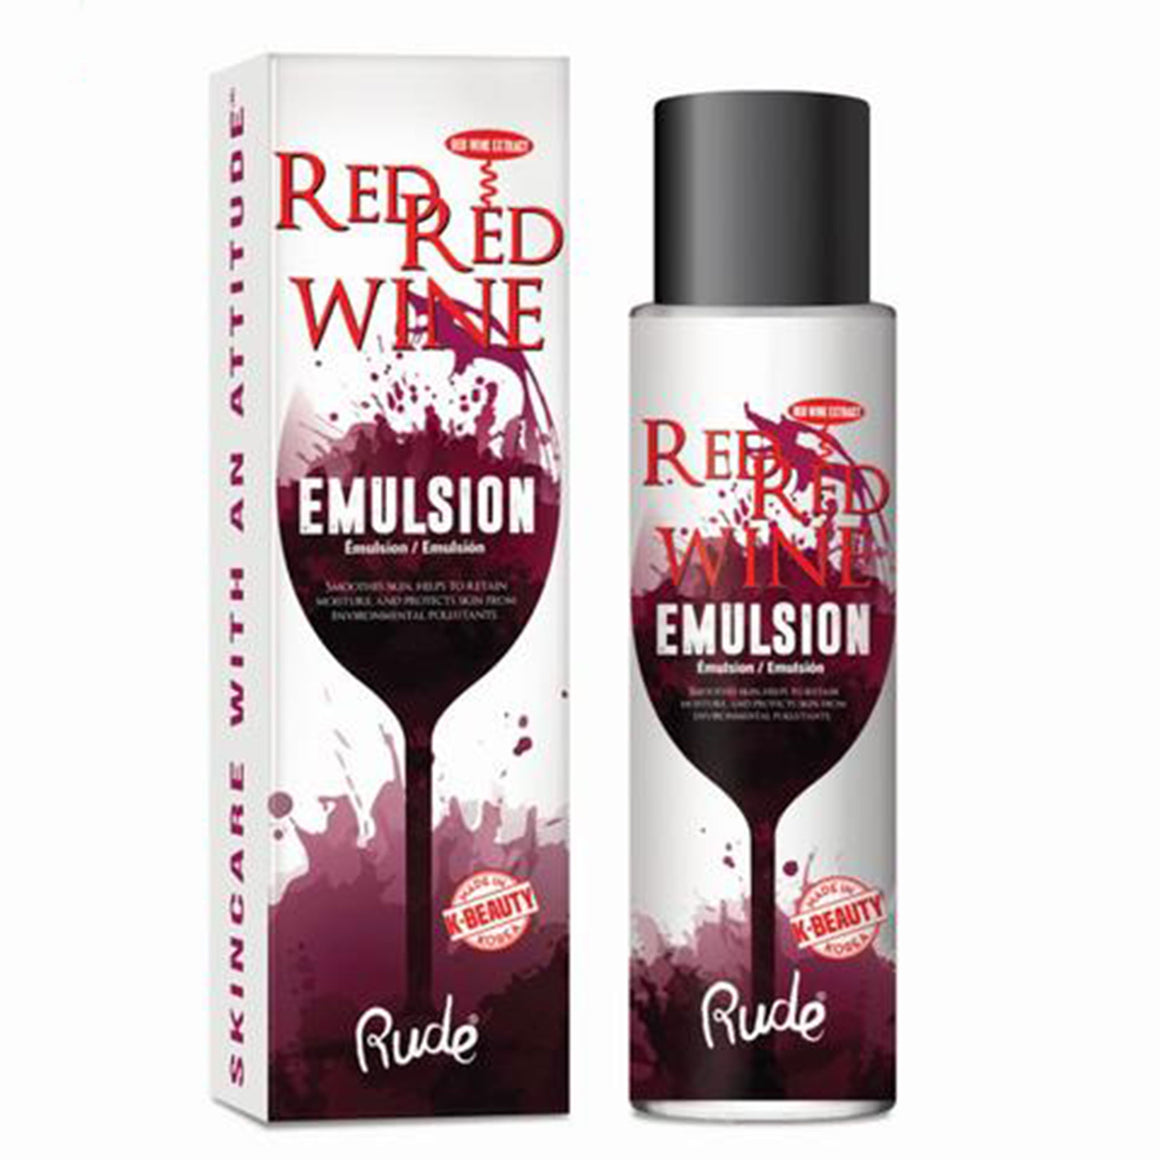 RUDE - Red Red Wine Emulsion 100ml